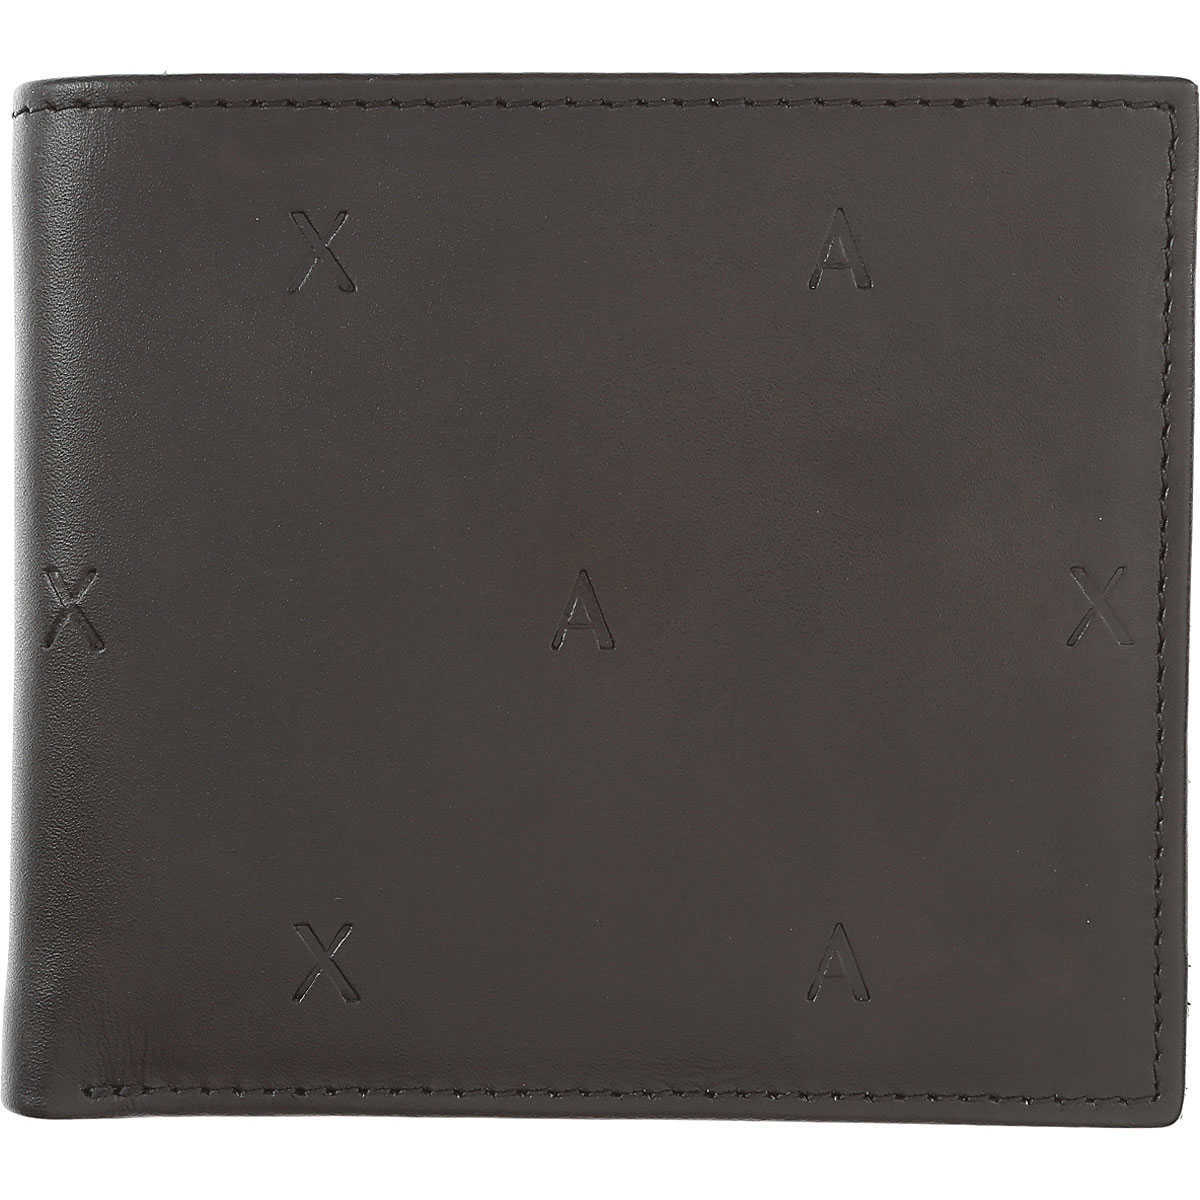 Armani Exchange Wallet for Men Black SE - GOOFASH